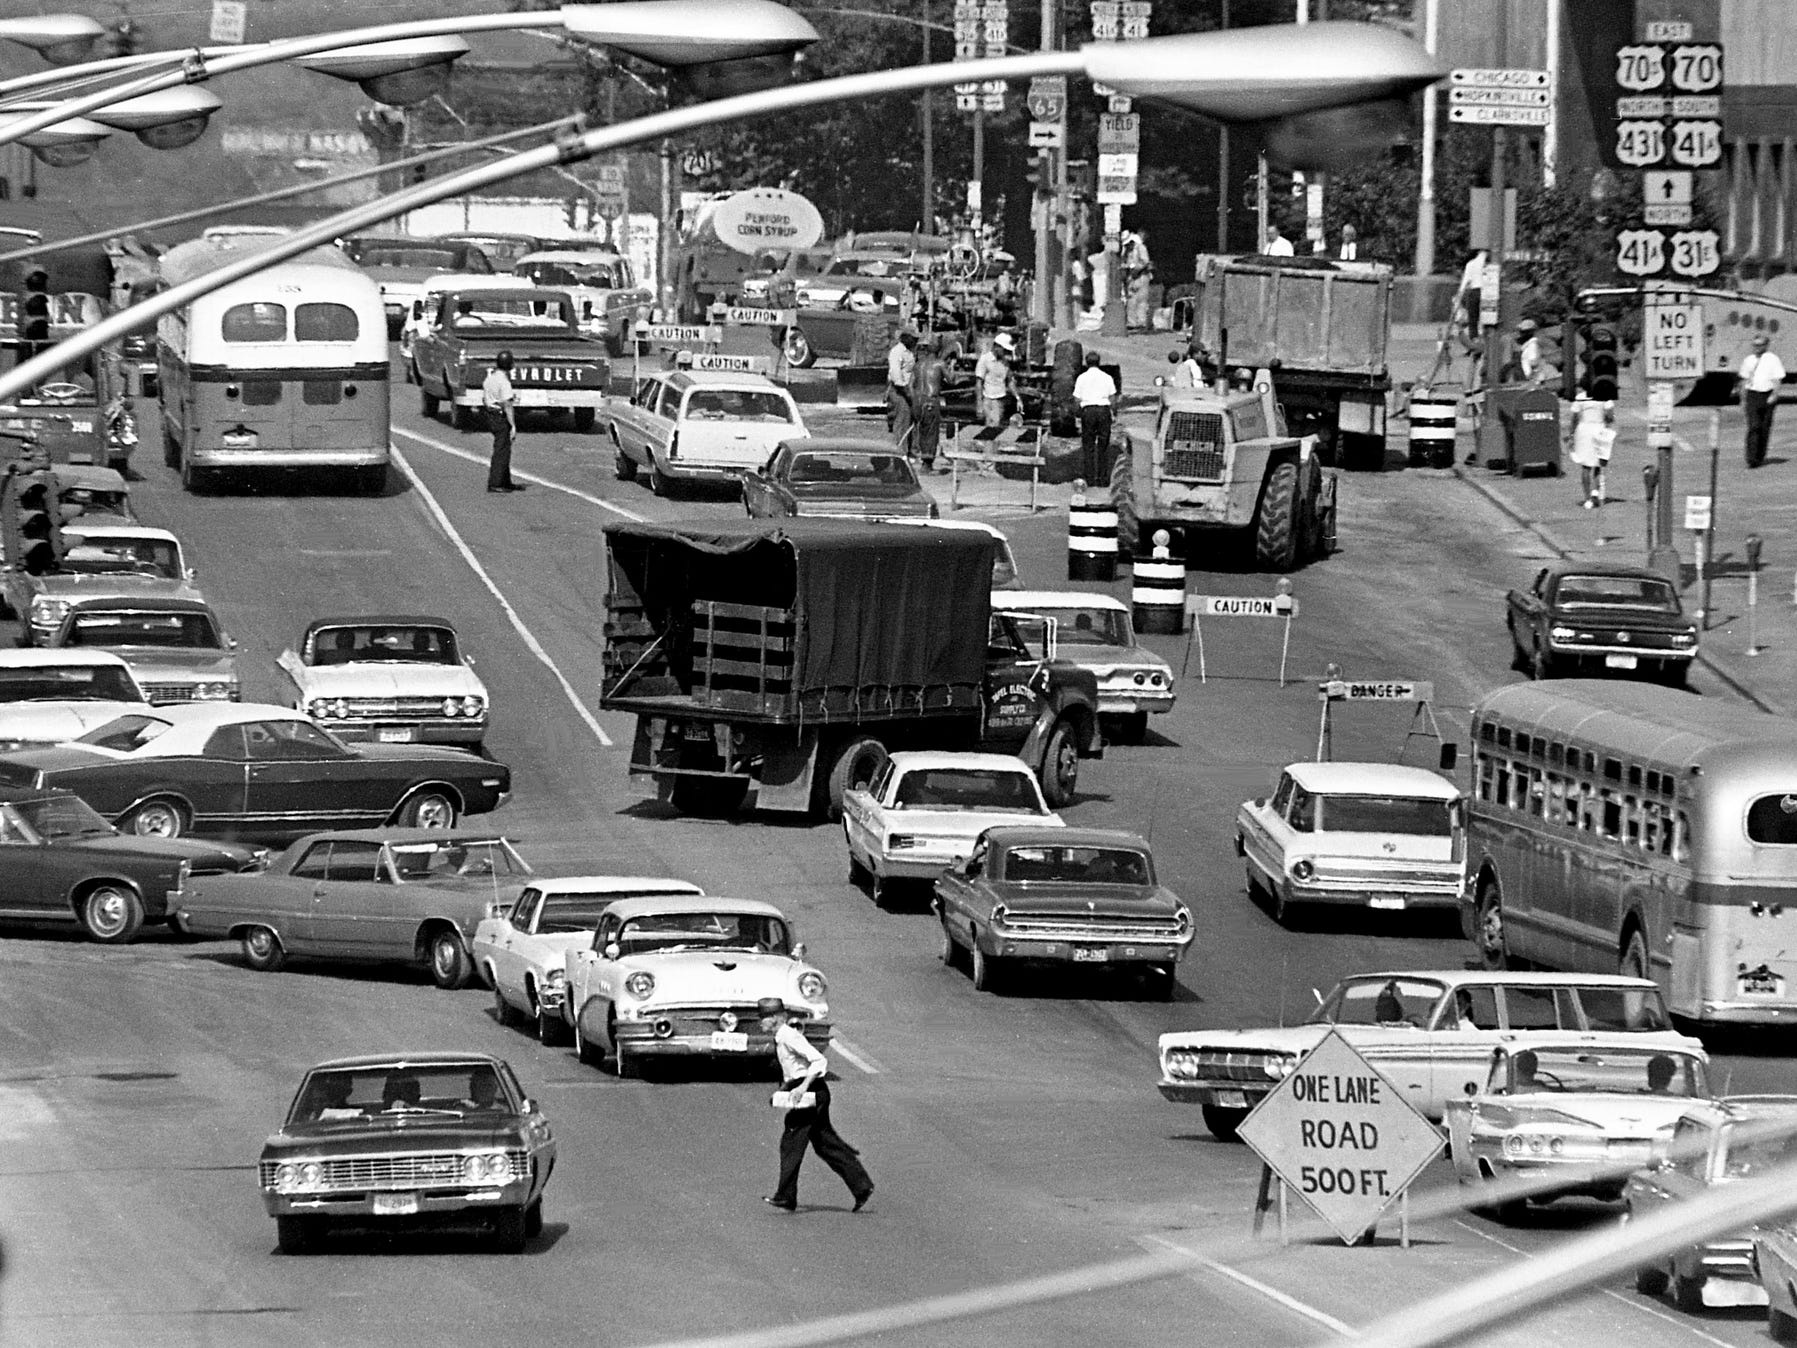 An elderly man weaves his way in and out of traffic snarled along Broadway between Eighth and Tenth Avenues, one of the busiest intersections in Tennessee, on Aug. 14, 1968. It is further cluttered and confused as workers attempt to resurface the street.